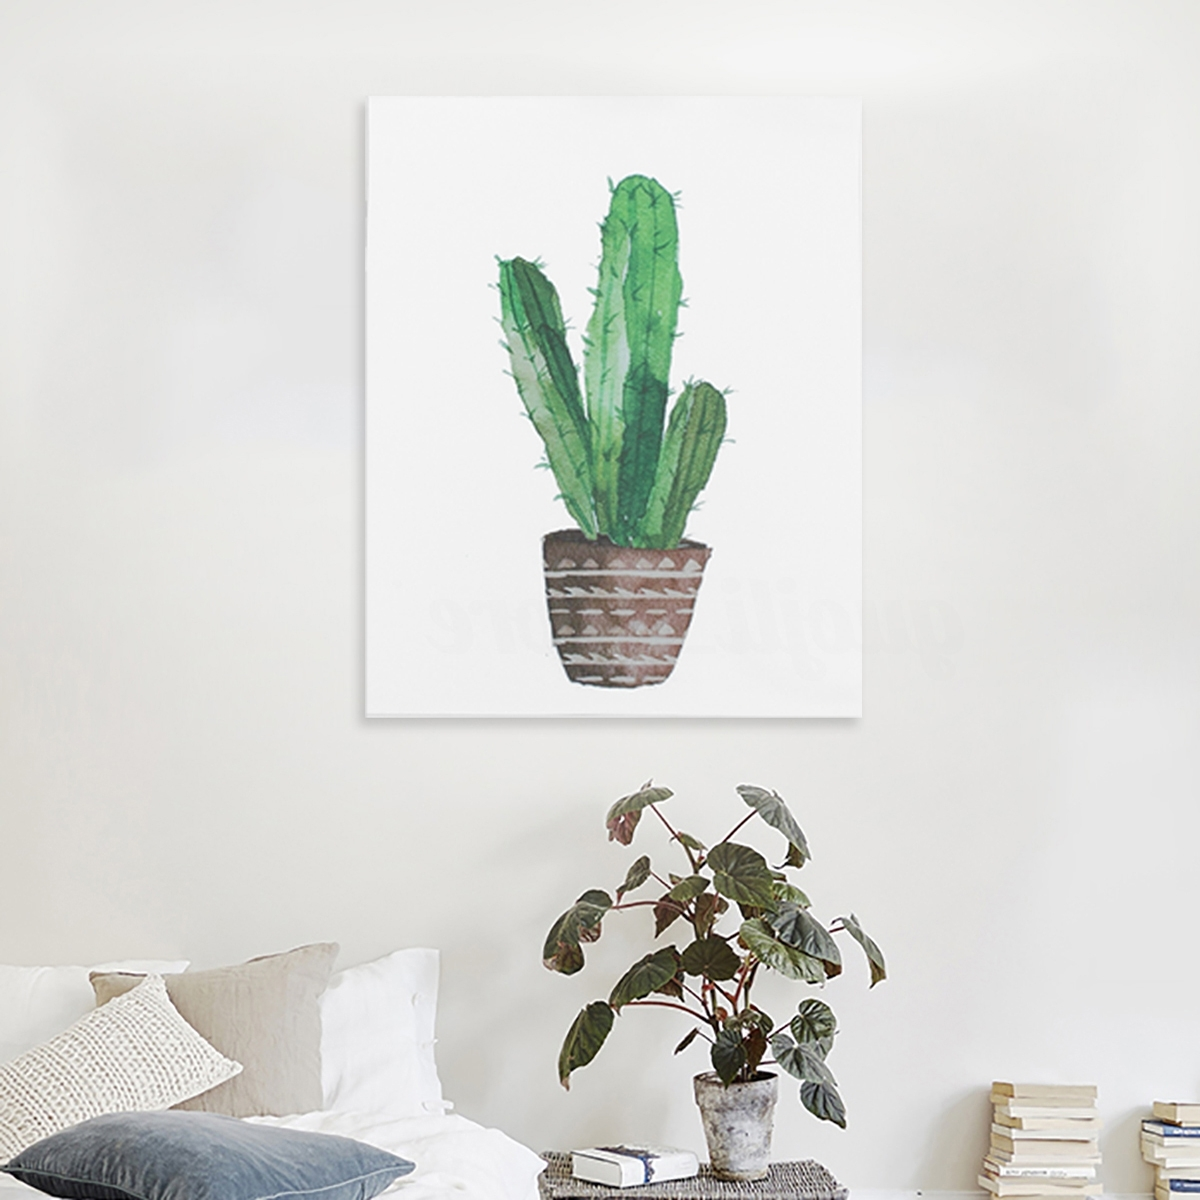 Modern Watercolor Green Cactus Plant Canvas Painting Art Print Home With Regard To Most Current Cactus Wall Art (View 8 of 15)